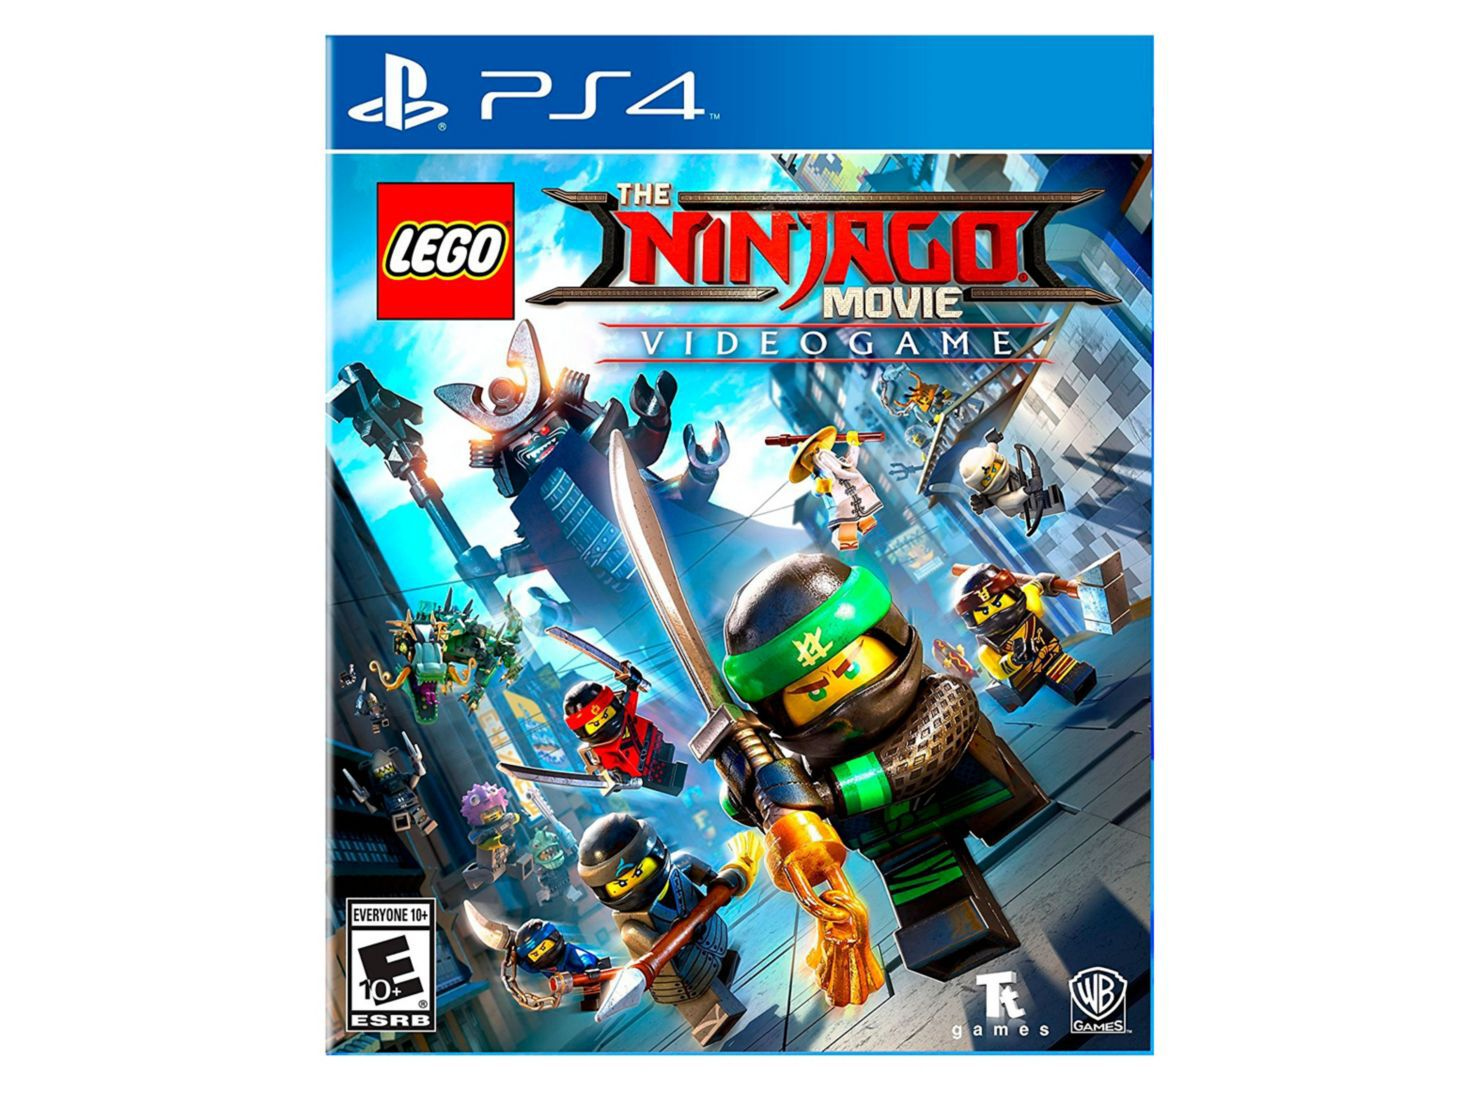 Juego Ps4 The Lego Ninjago Movie Video Game Juegos Ps4 Y Vr Paris